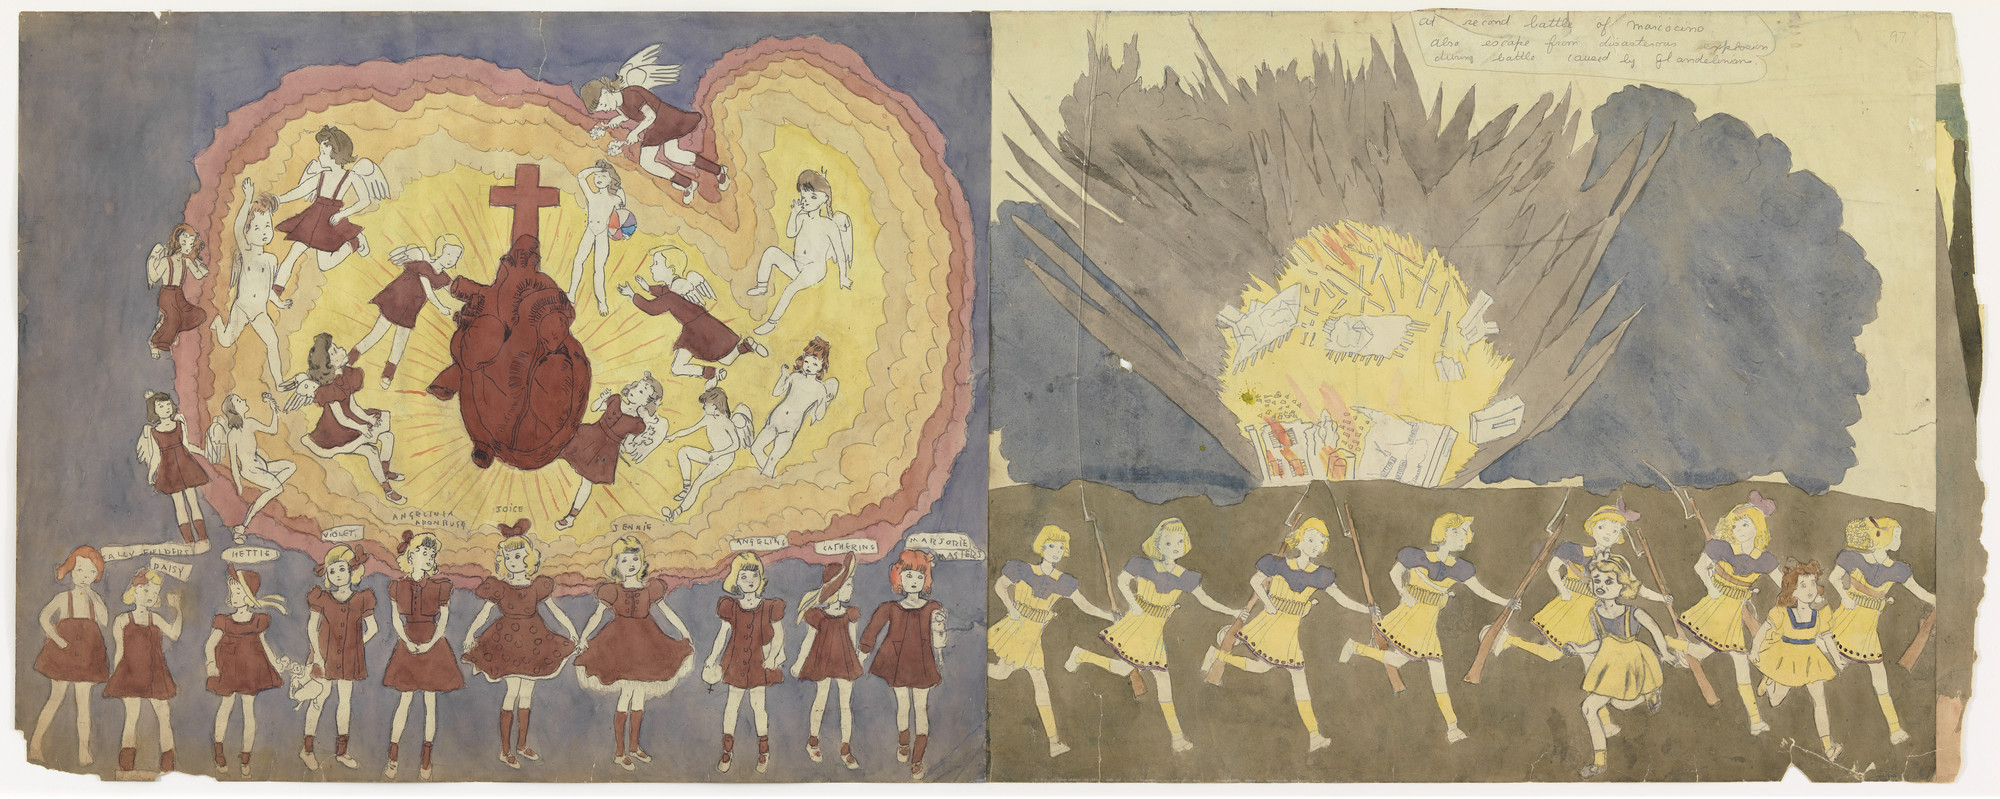 Henry Darger. a) The Vivian girls nuded like child slaves b ...